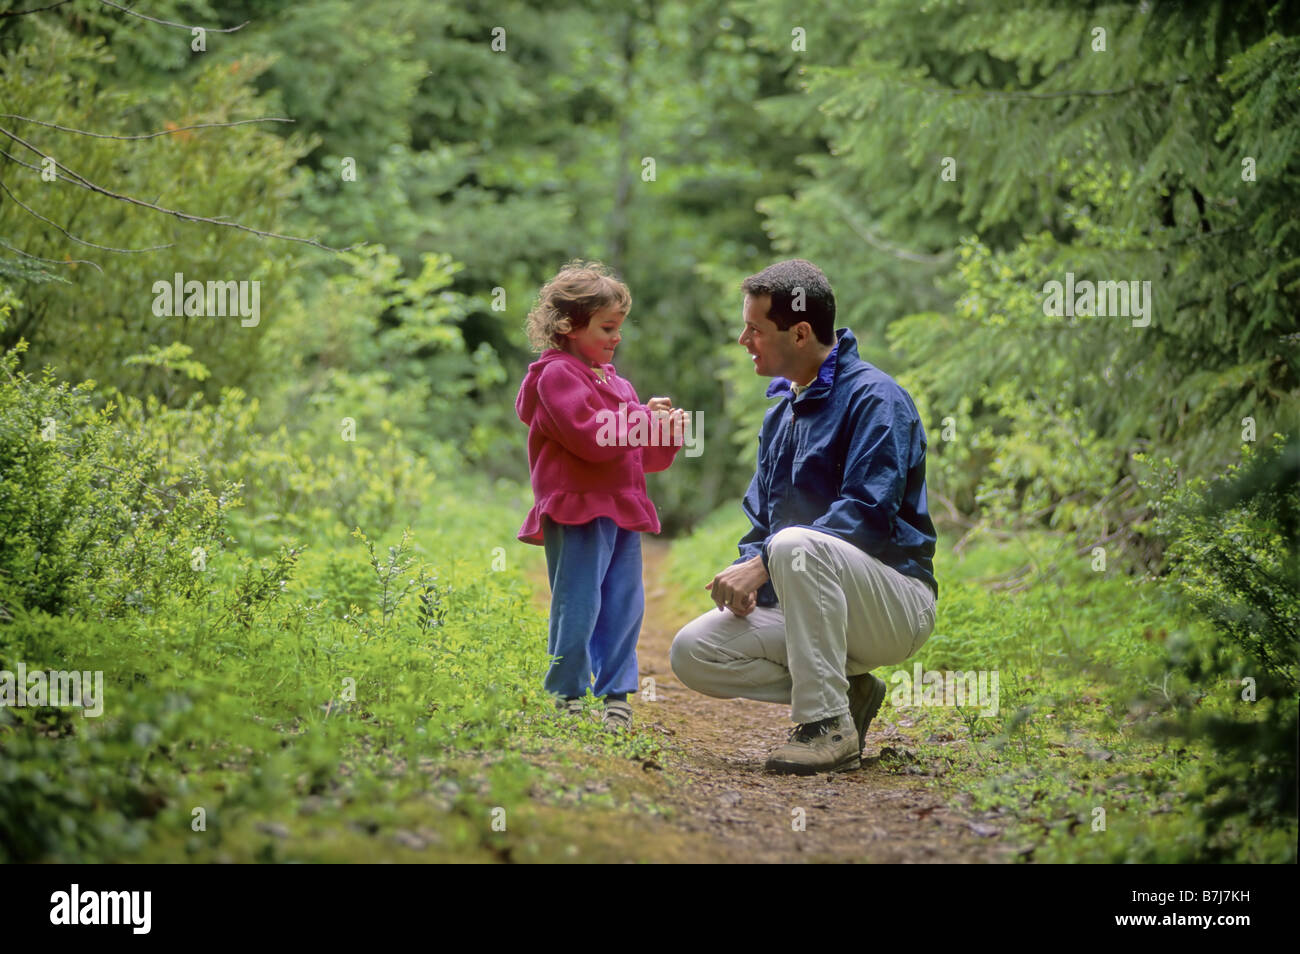 Dad leans down to talk with daughter, in forest with lupin flowers, Whistler, BC - Stock Image